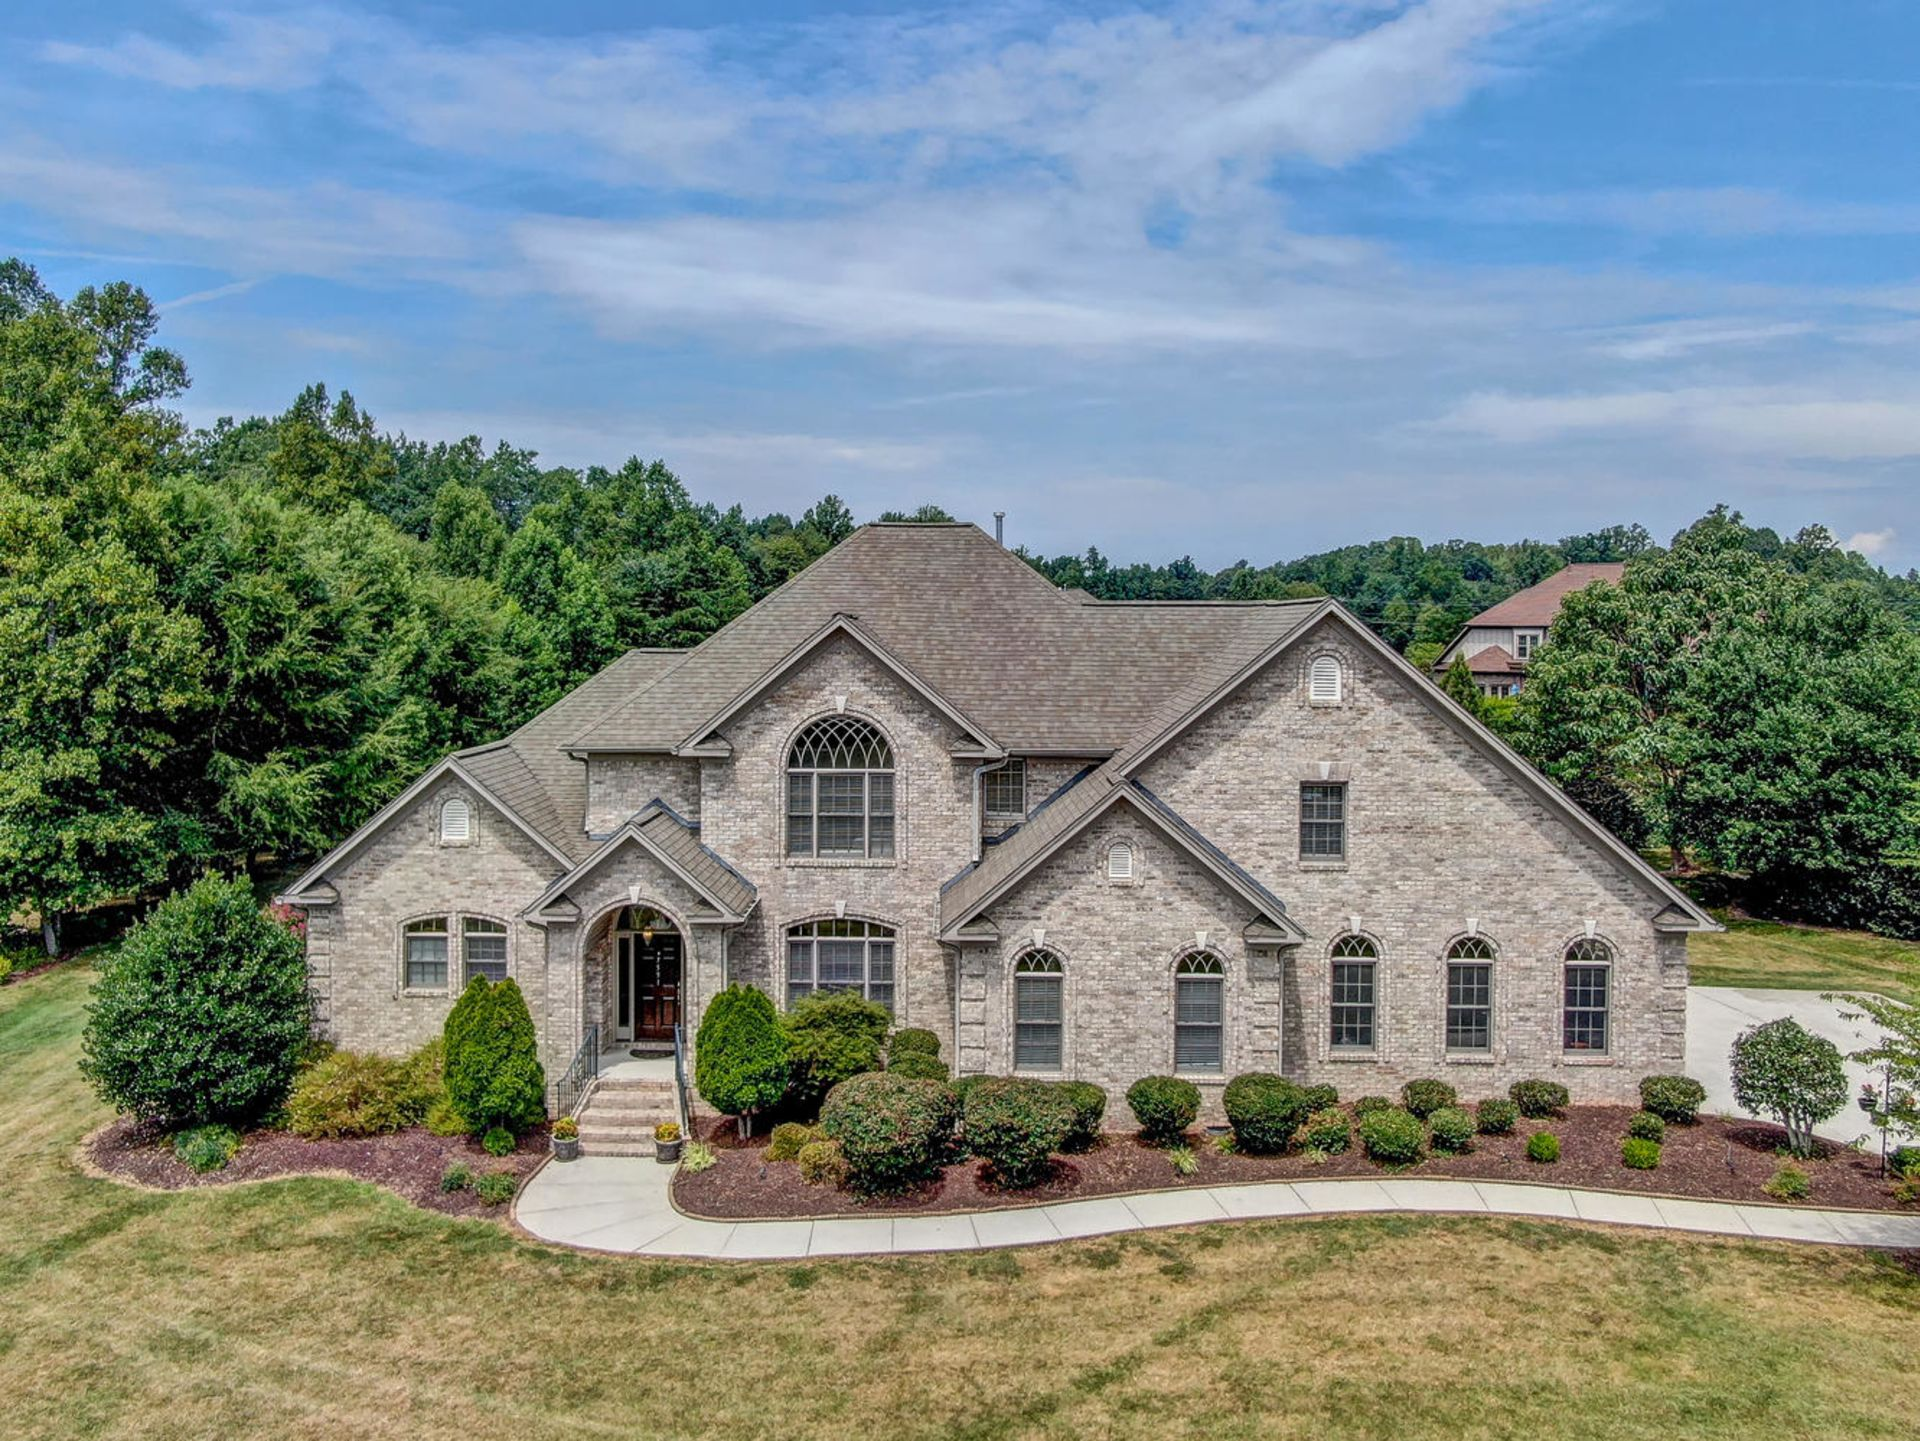 Executive home in wonderful community of Arbor Run.